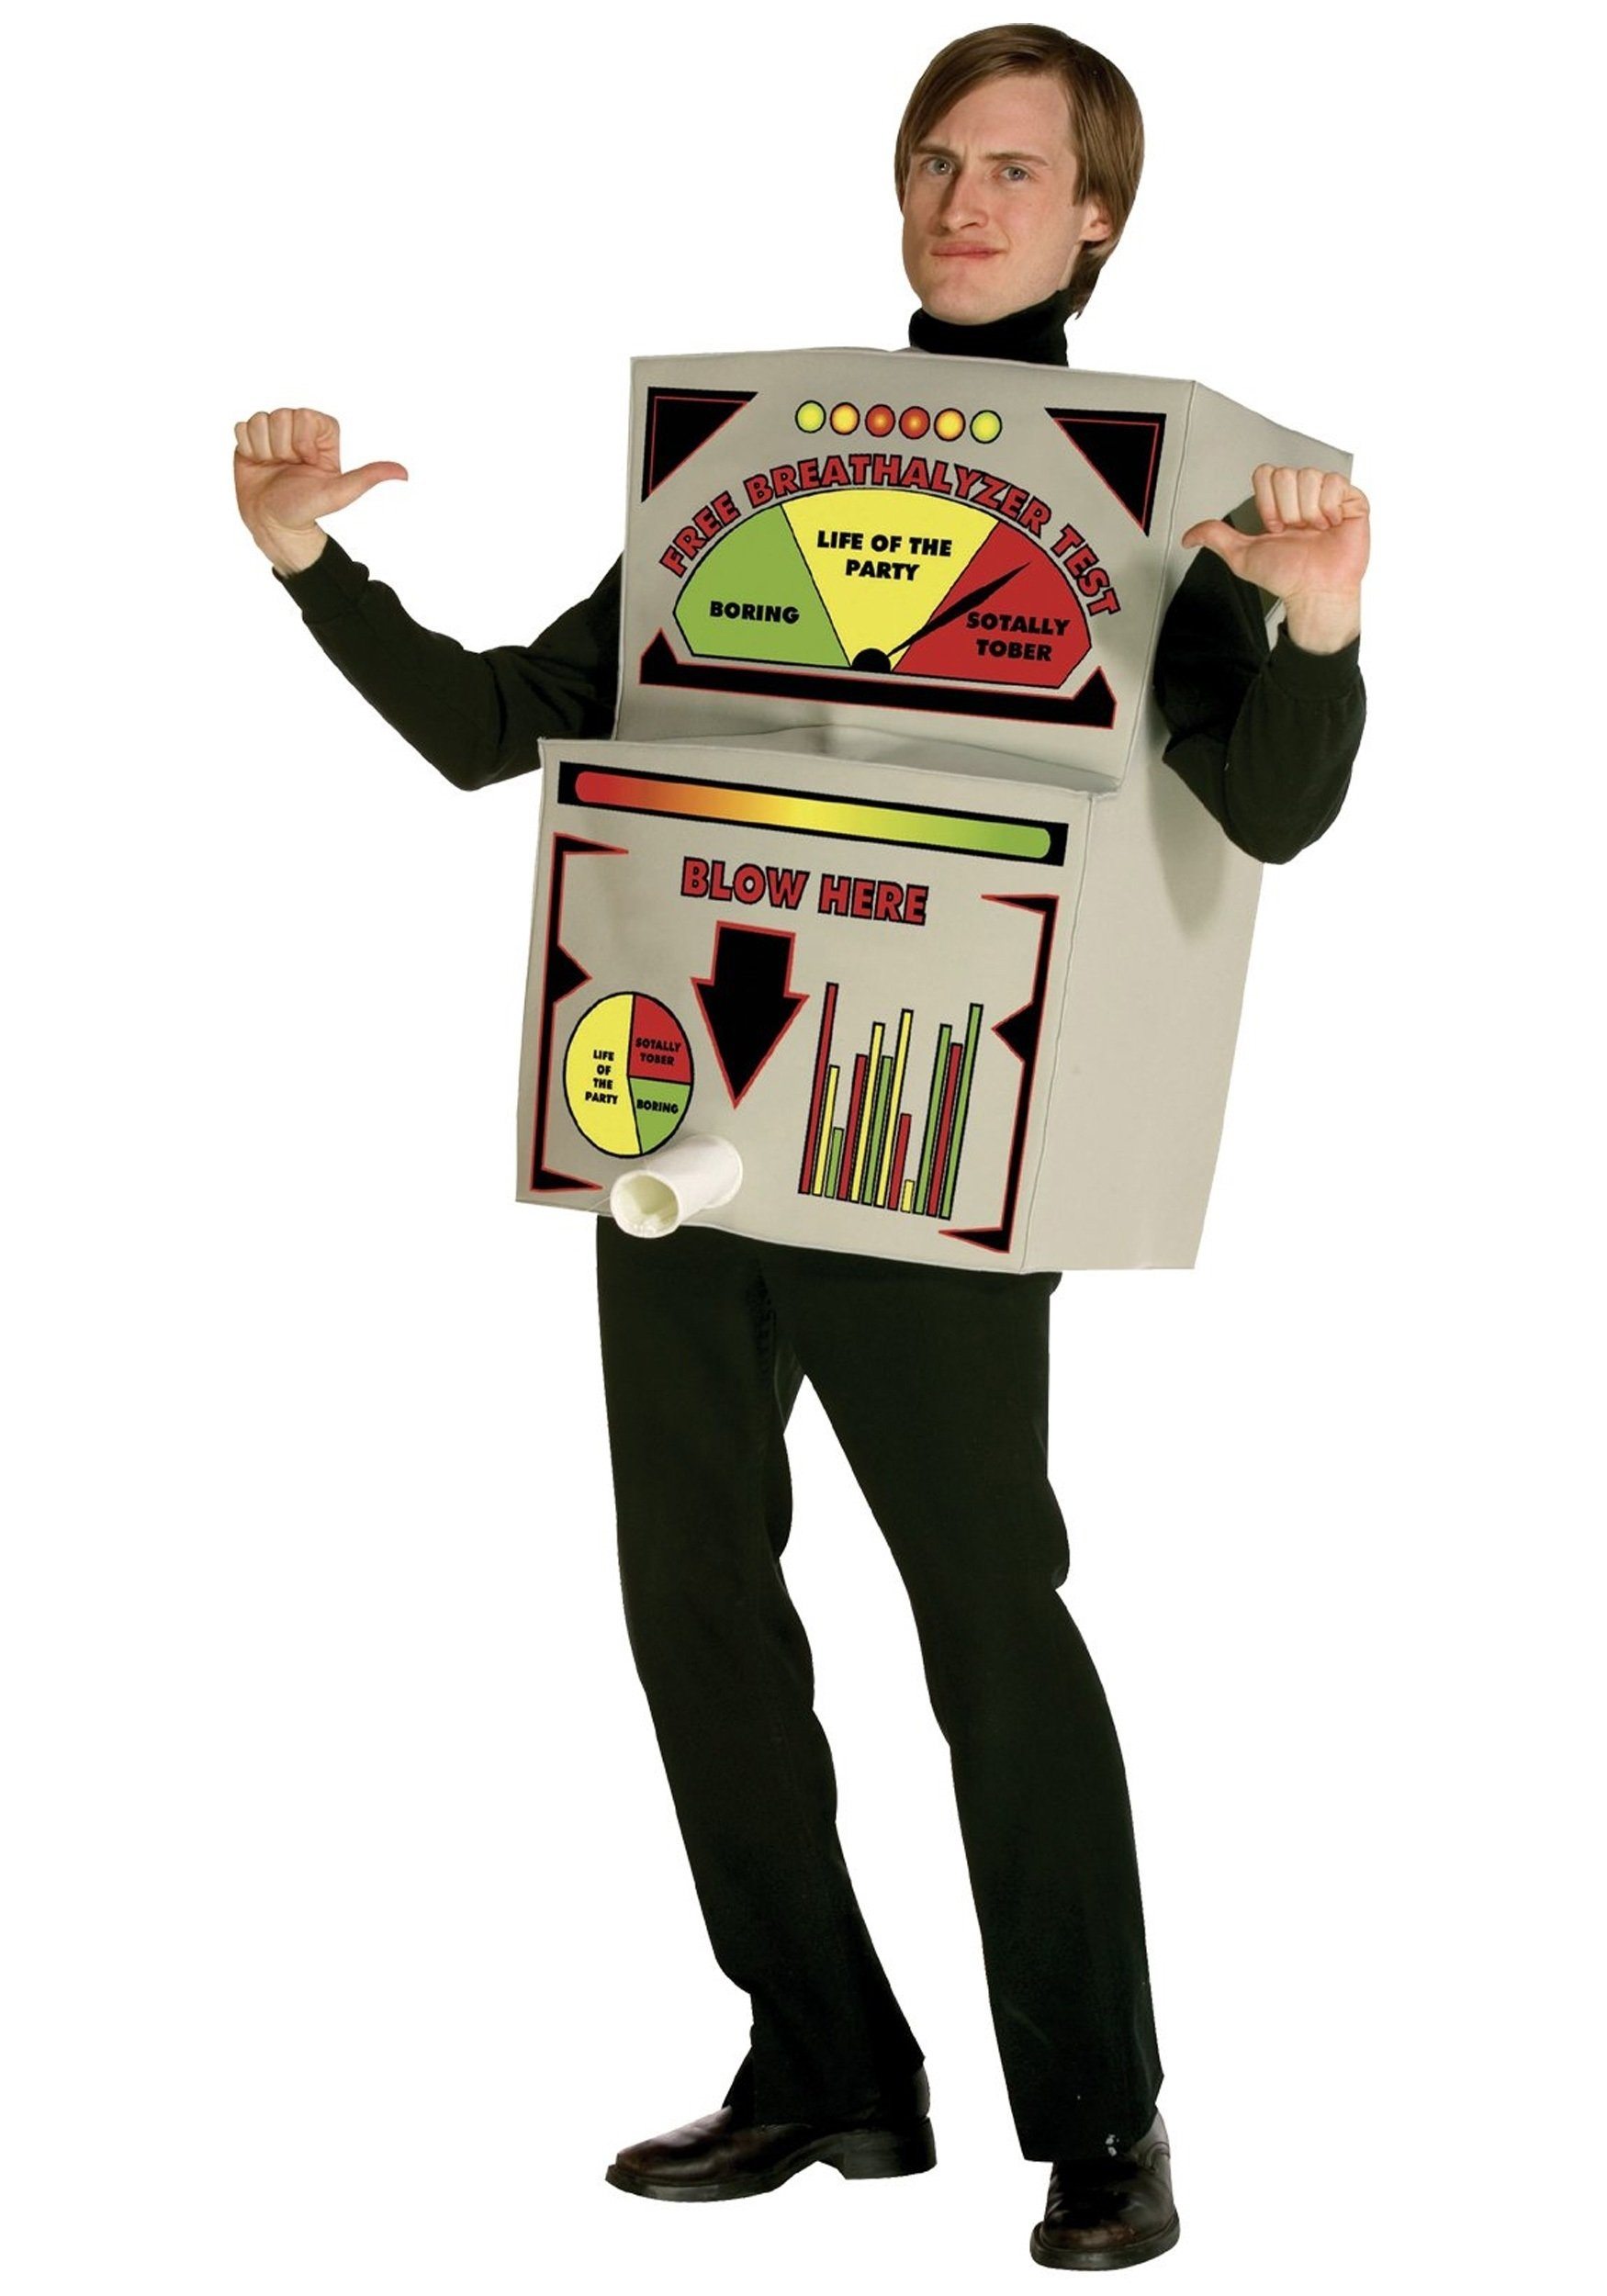 10 Beautiful Funny Female Halloween Costume Ideas breathalyzer costume 2021